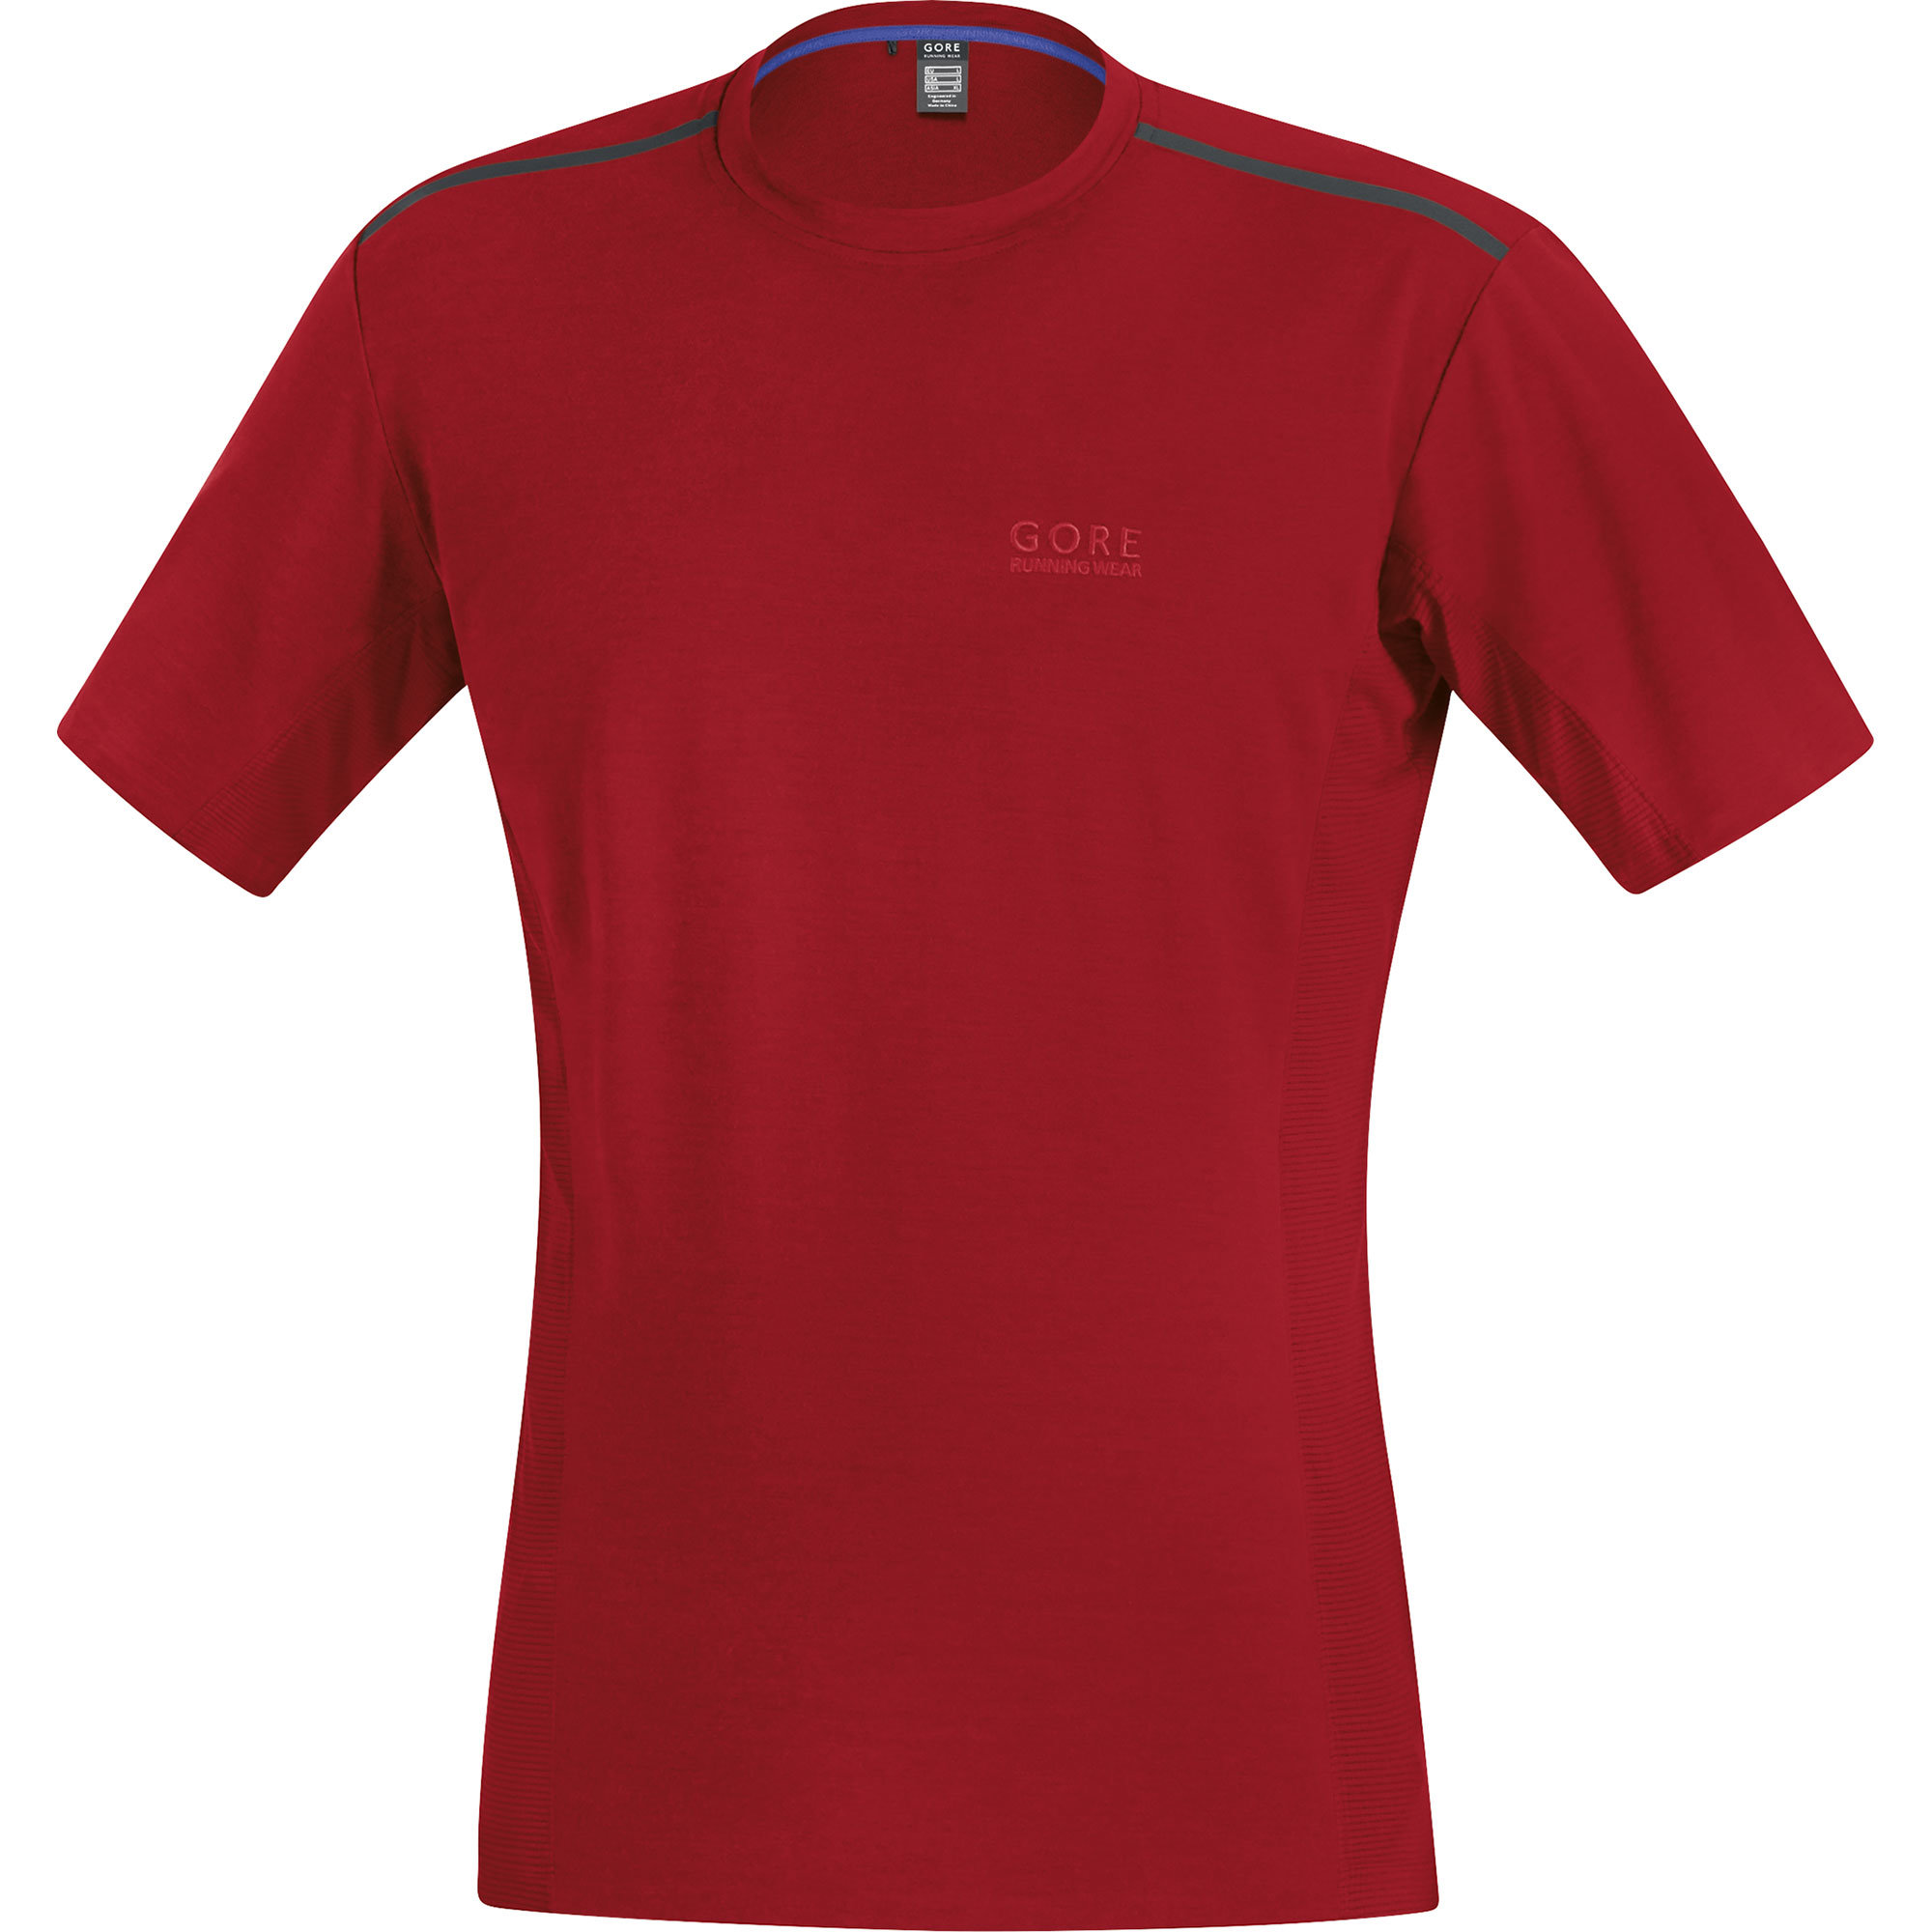 Gore Urban Run 2.0 Shirt in Ruby Red